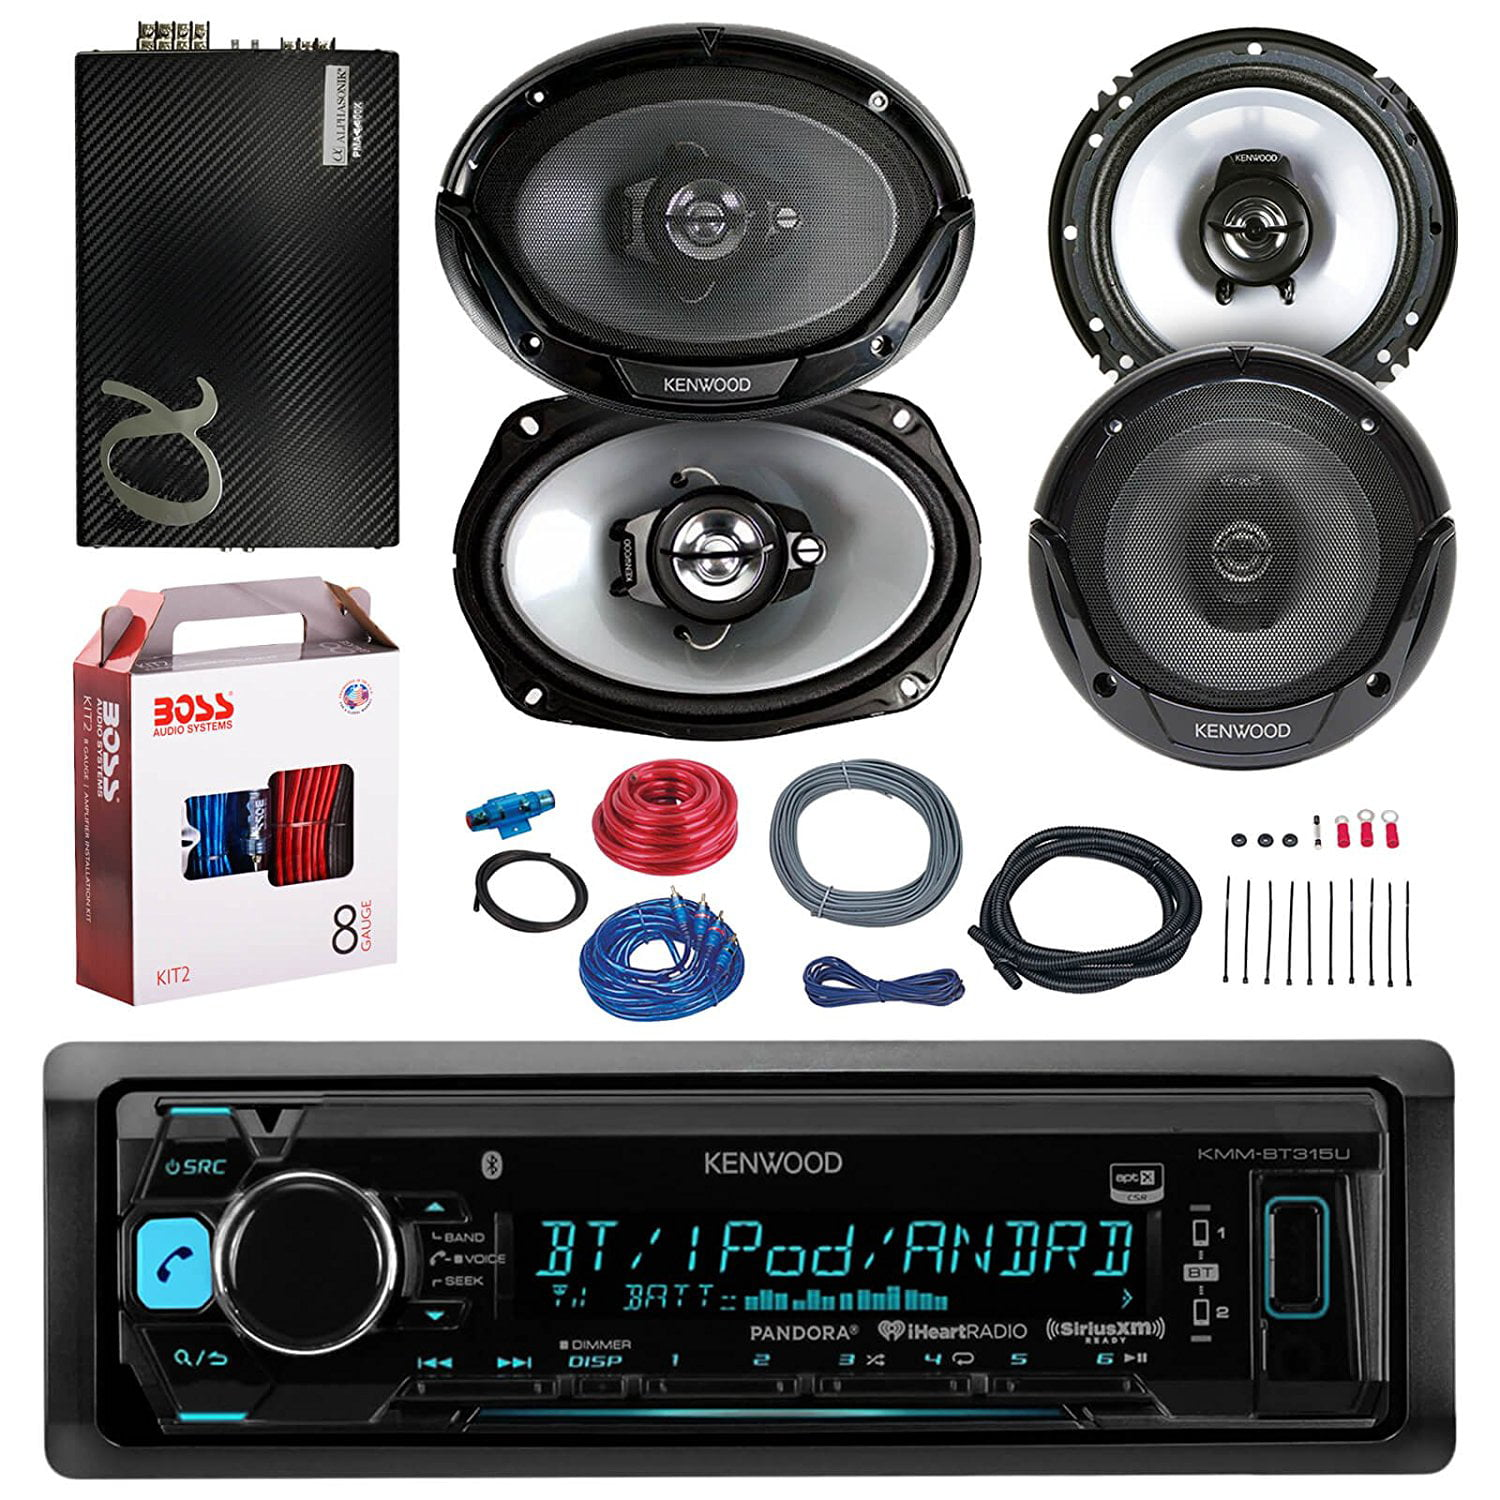 Kenwood Kmmbt318u Bluetooth Car Radio Stereo Receiver Bundle Combo Cheap Amp Wiring Kit With 2x 300w 65 2 Way Audio Speakers 6x9 3 Speaker 2400 Watt Class A B Amplifier Boss 8g Install